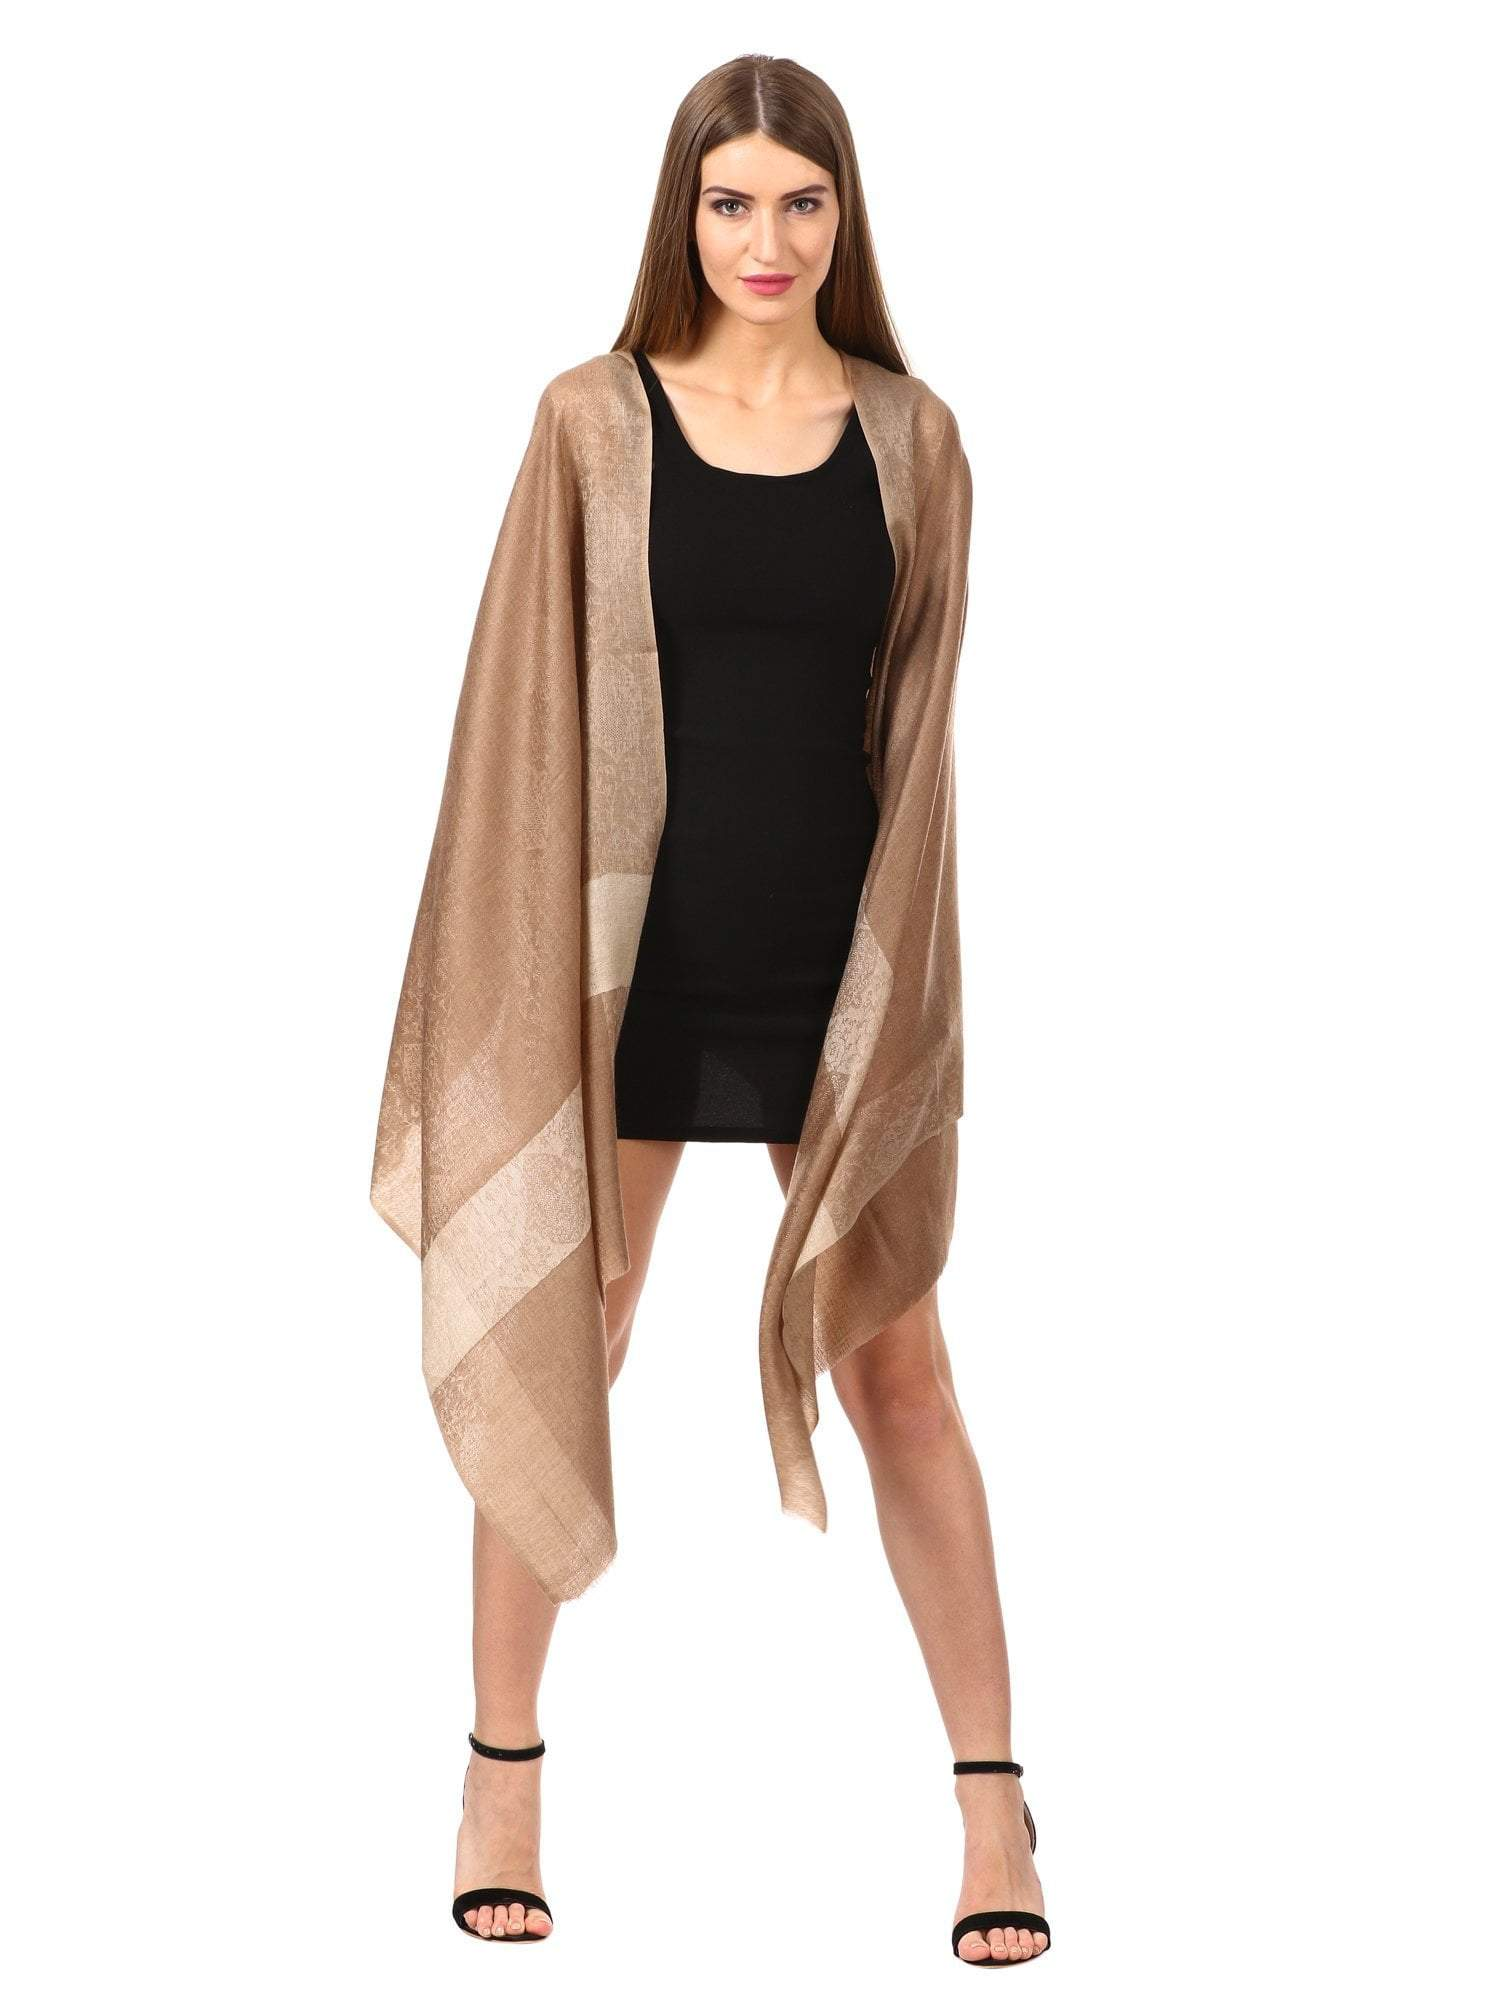 Pashtush Store Scarf Women's Reversible Stole, with Paiseley weave, Nude Beige